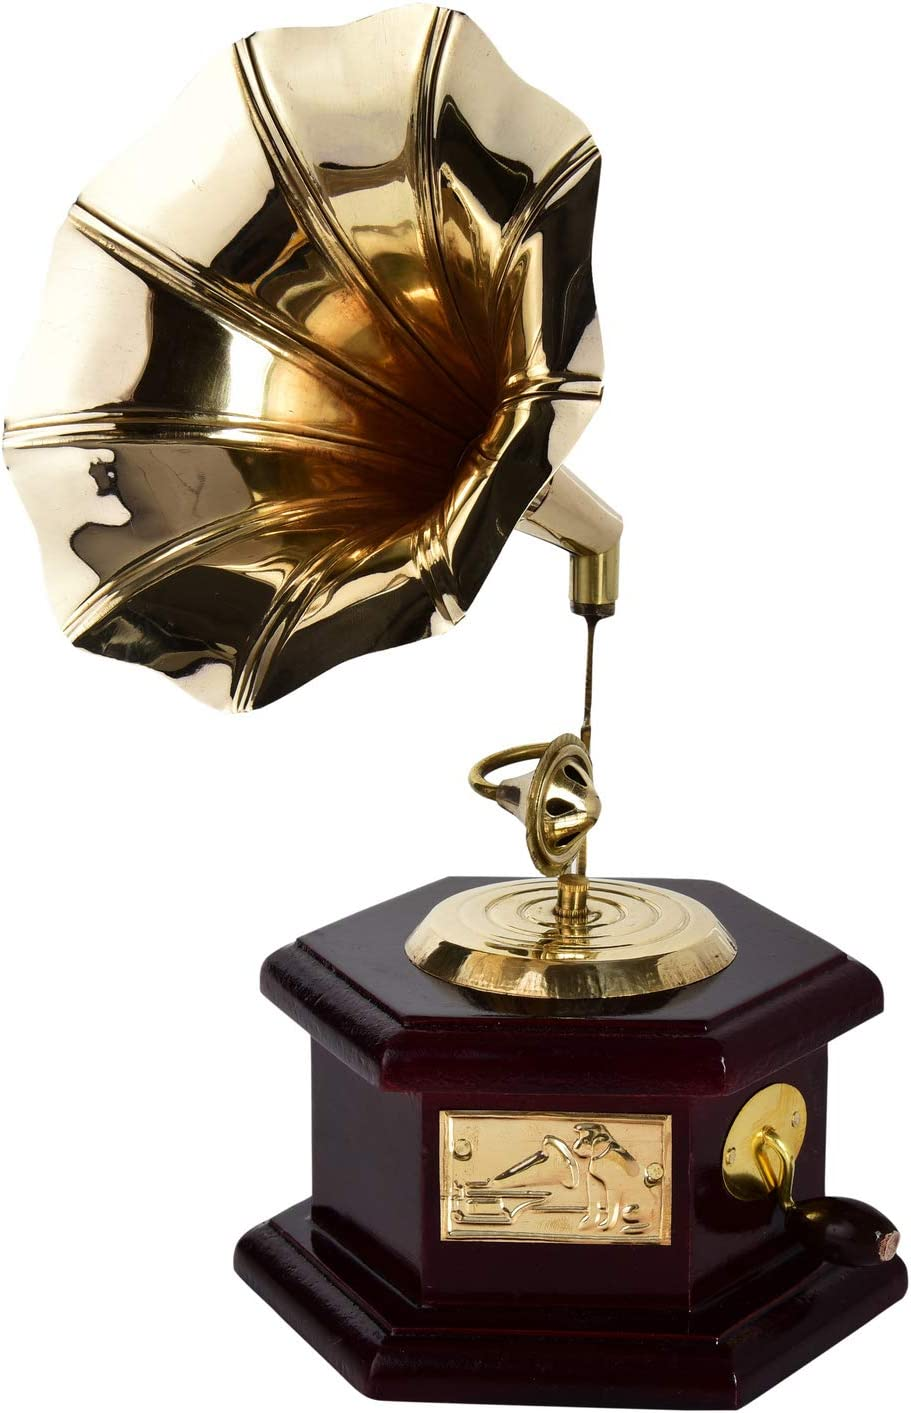 diollo Decorative Gramophone Antique Style Wooden Brass Showpiece Indian Handmade Living Room Table Piece Home Décor